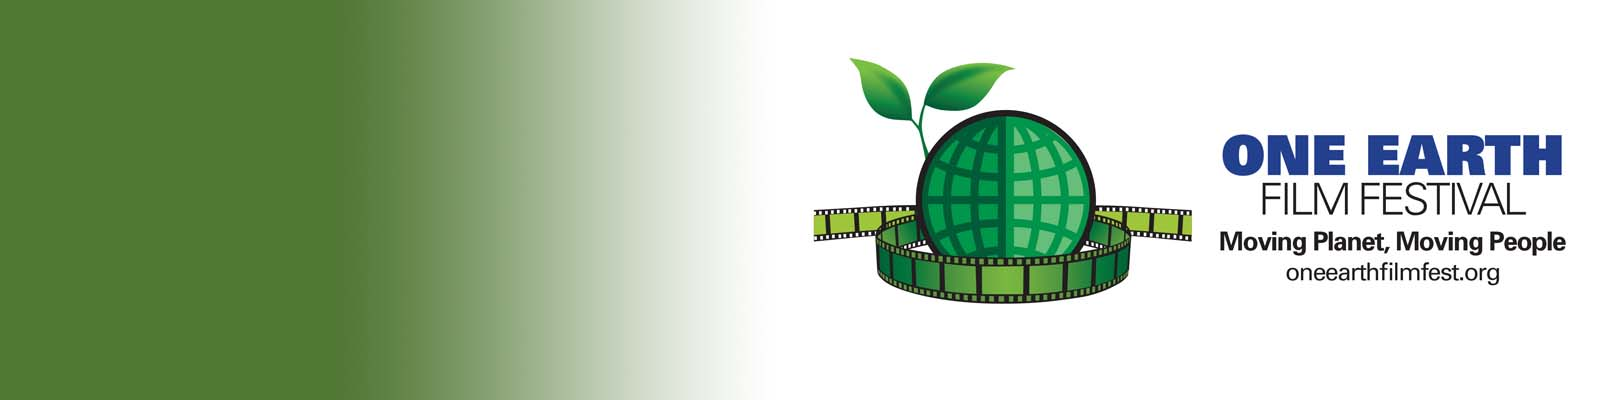 2018 One Earth Film Festival, March 2-11